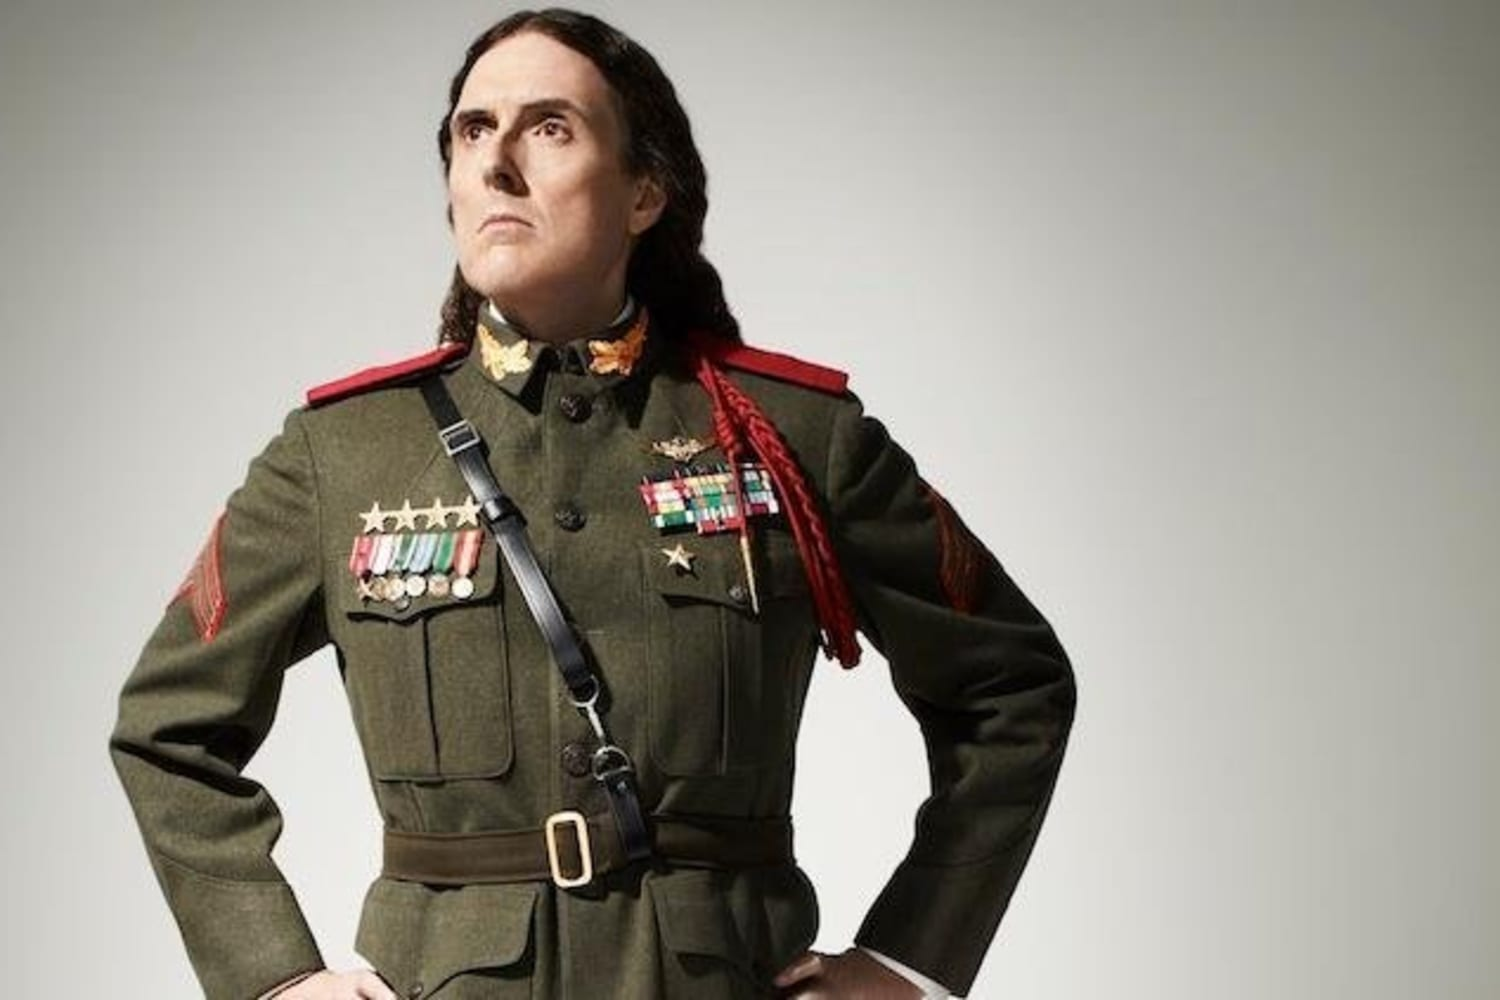 Top 10 Best Weird Al Yankovic Songs Of All Time